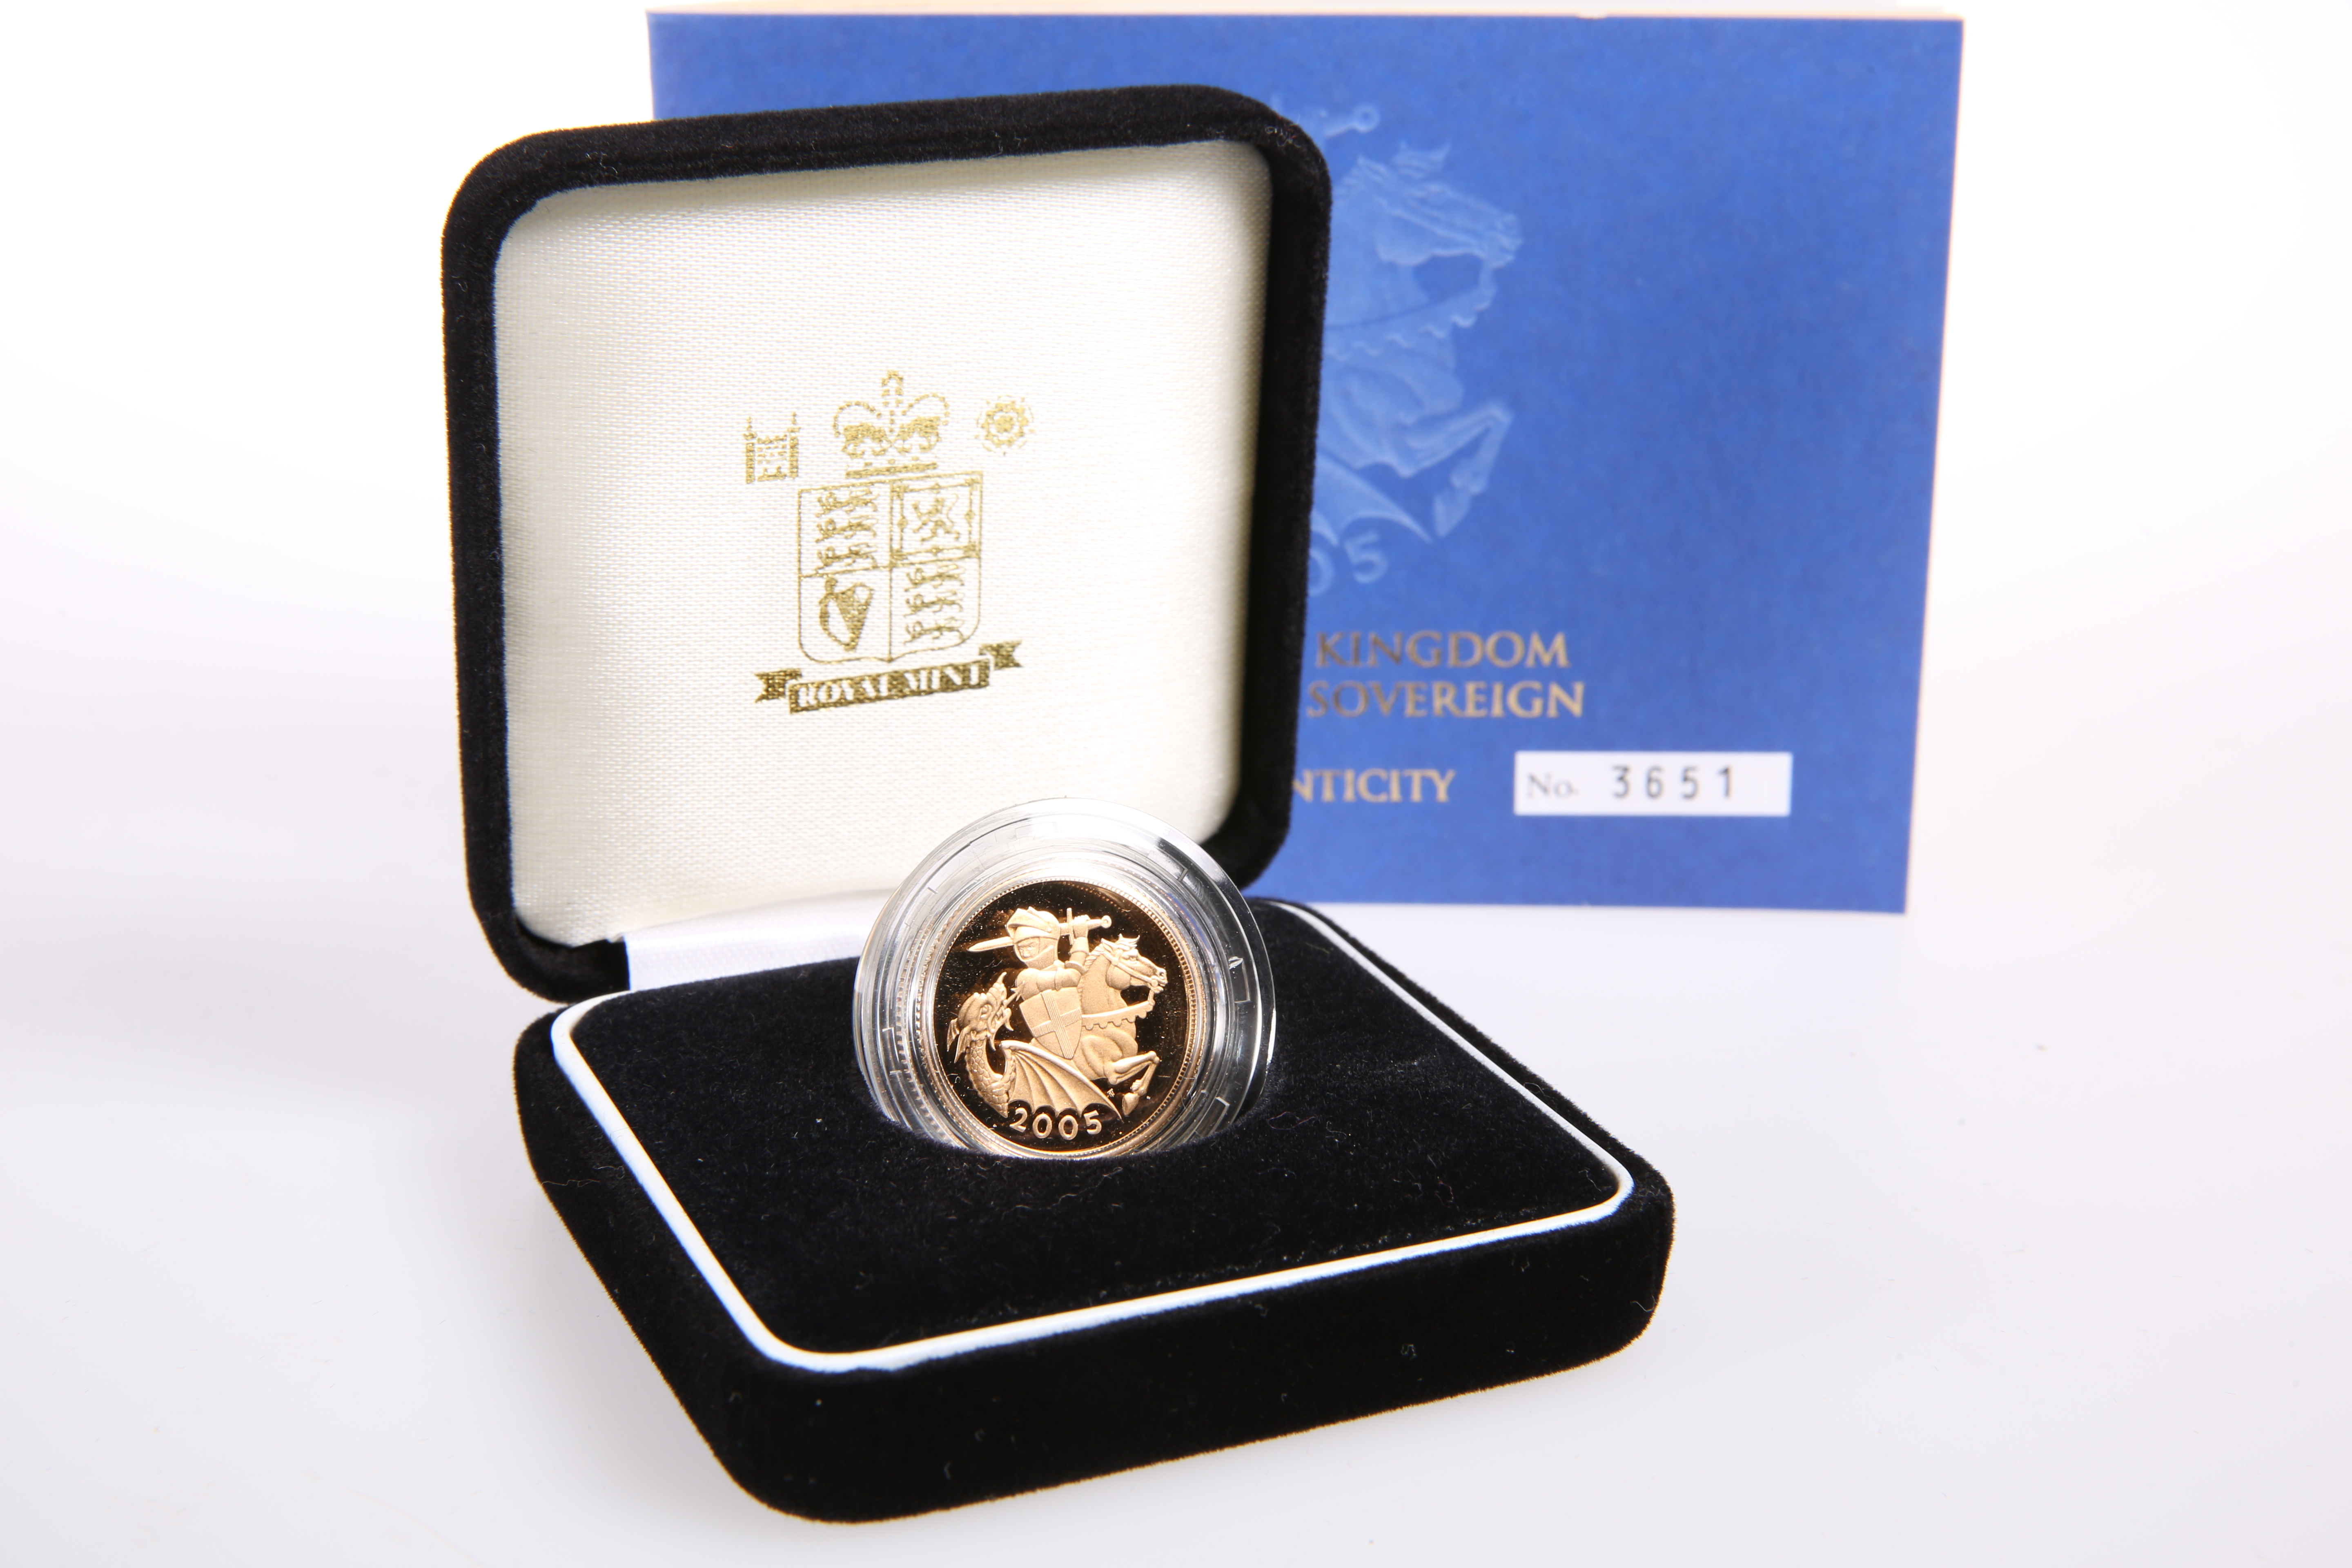 A ROYAL MINT 2005 GOLD PROOF FULL SOVEREIGN, boxed with COA no. 3651